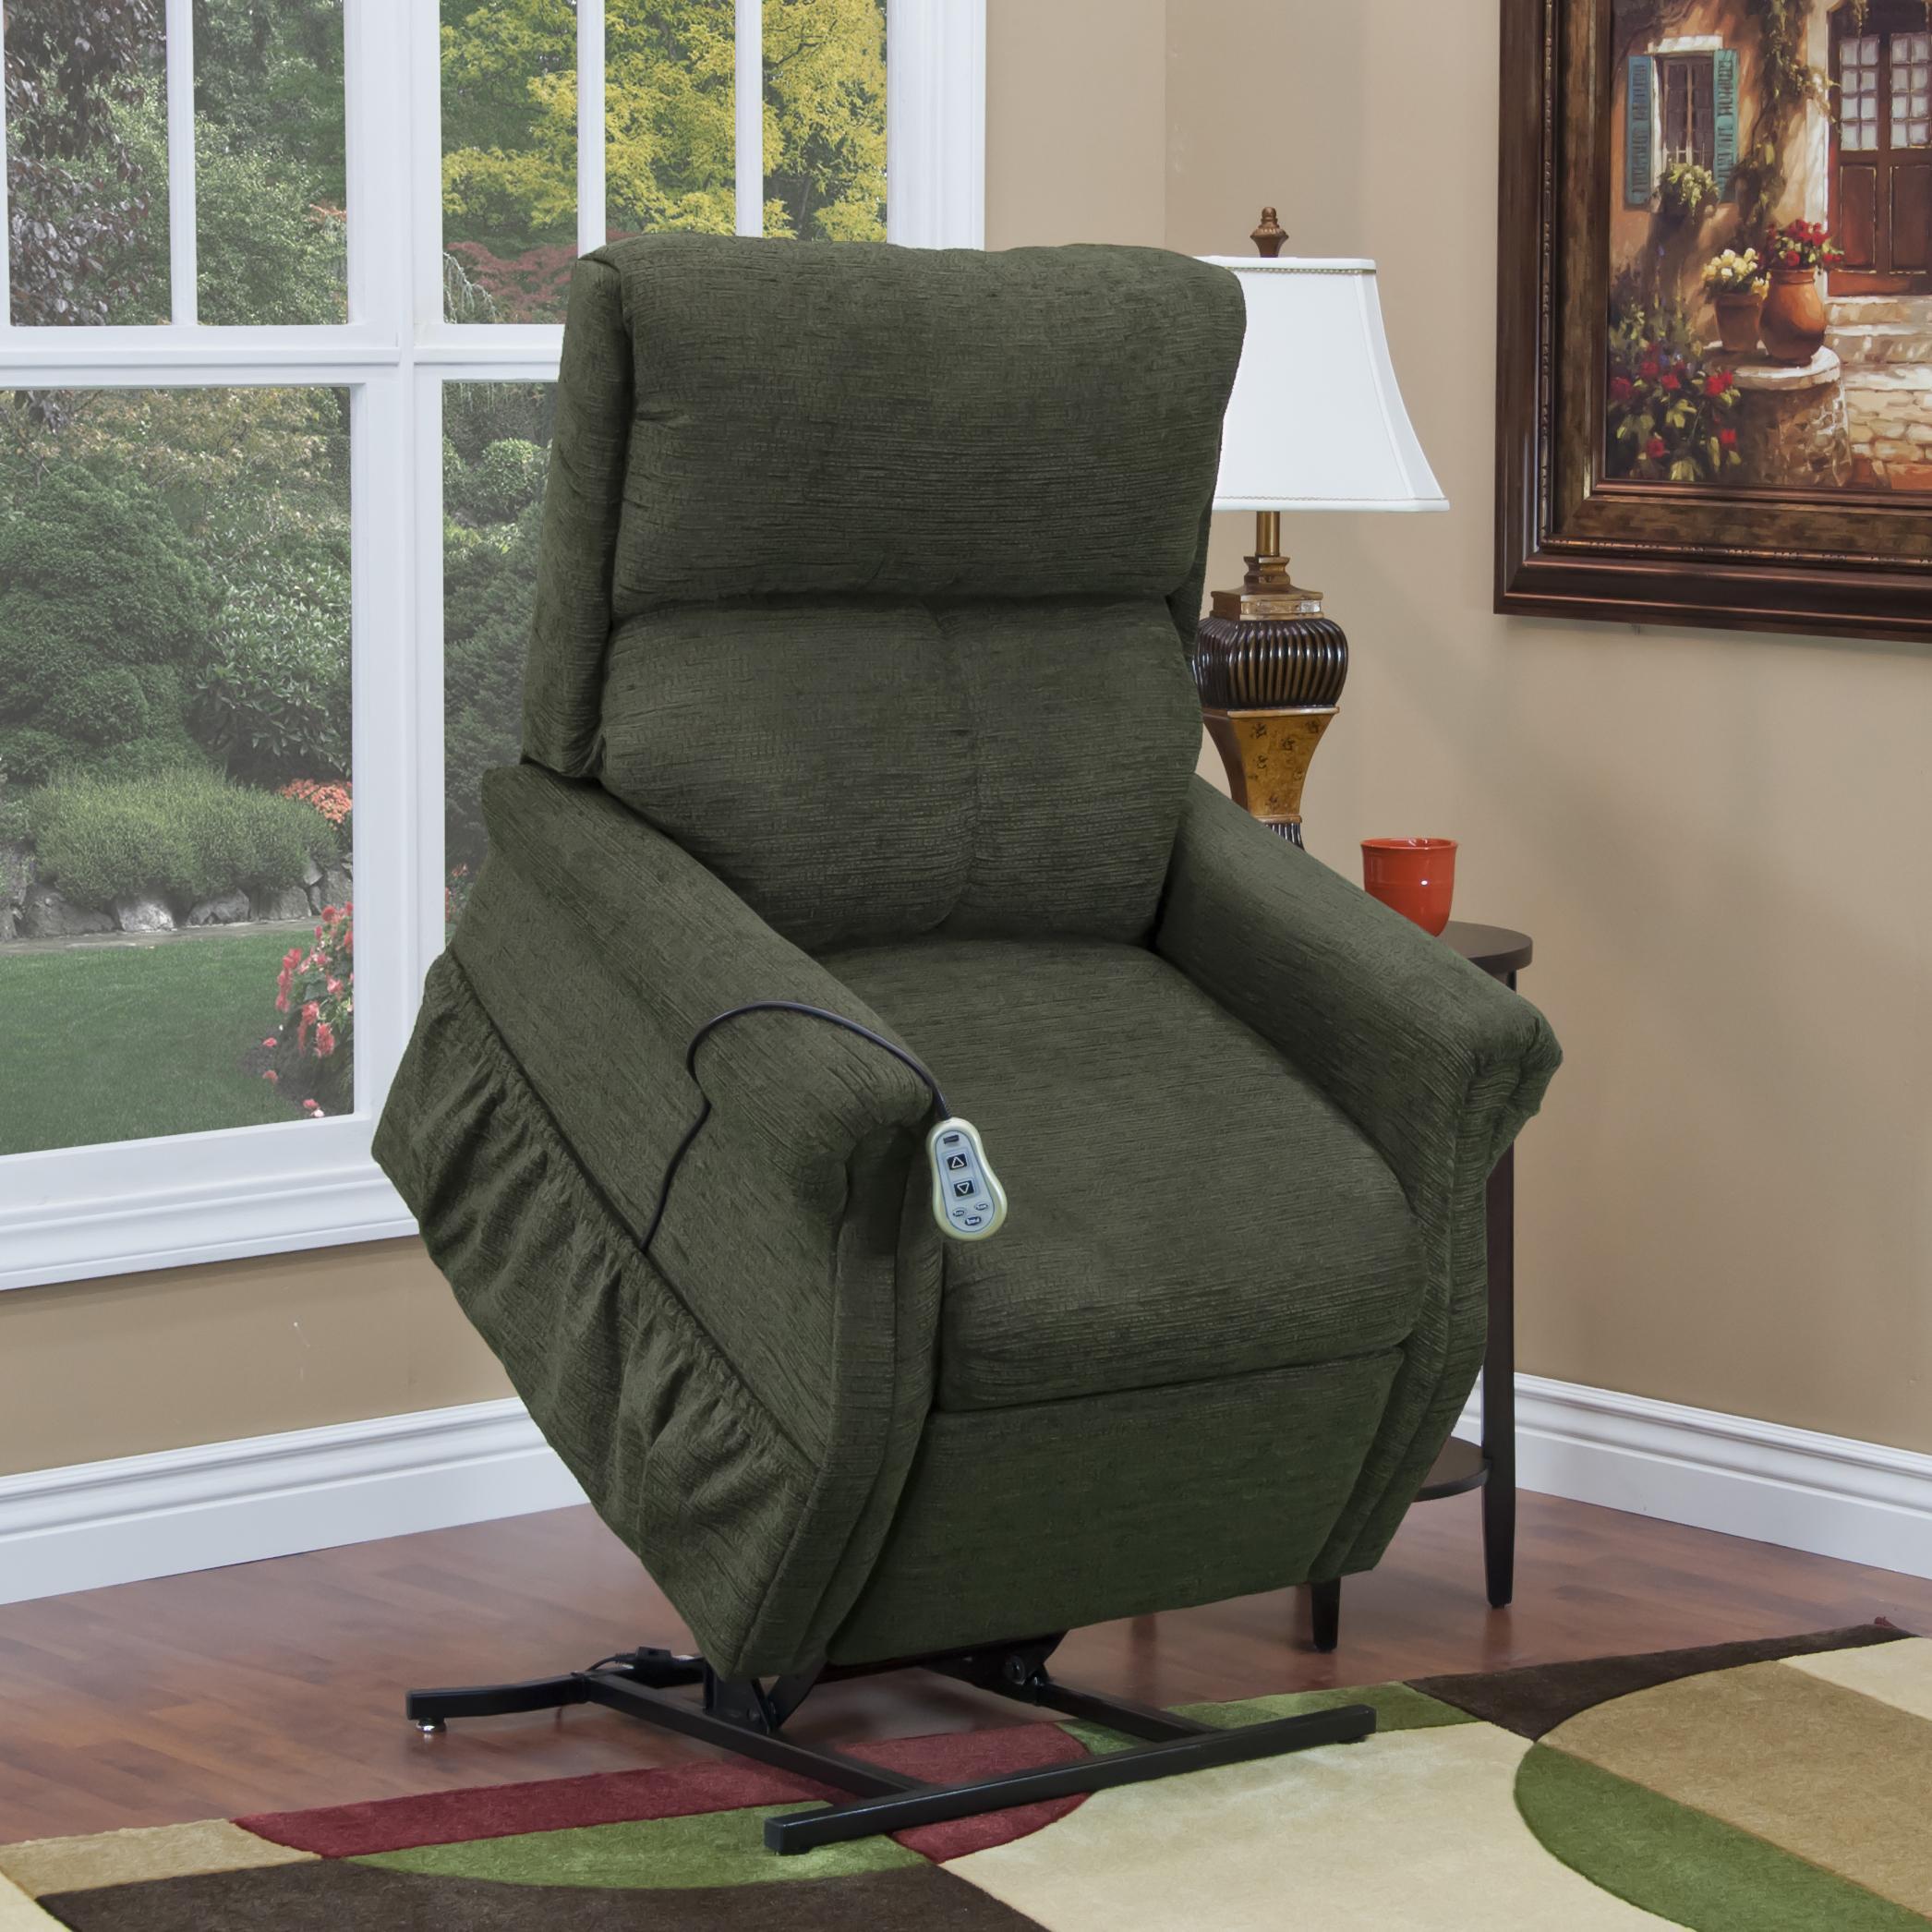 1175 Lift Recliner by Med-Lift & Mobility at Story & Lee Furniture